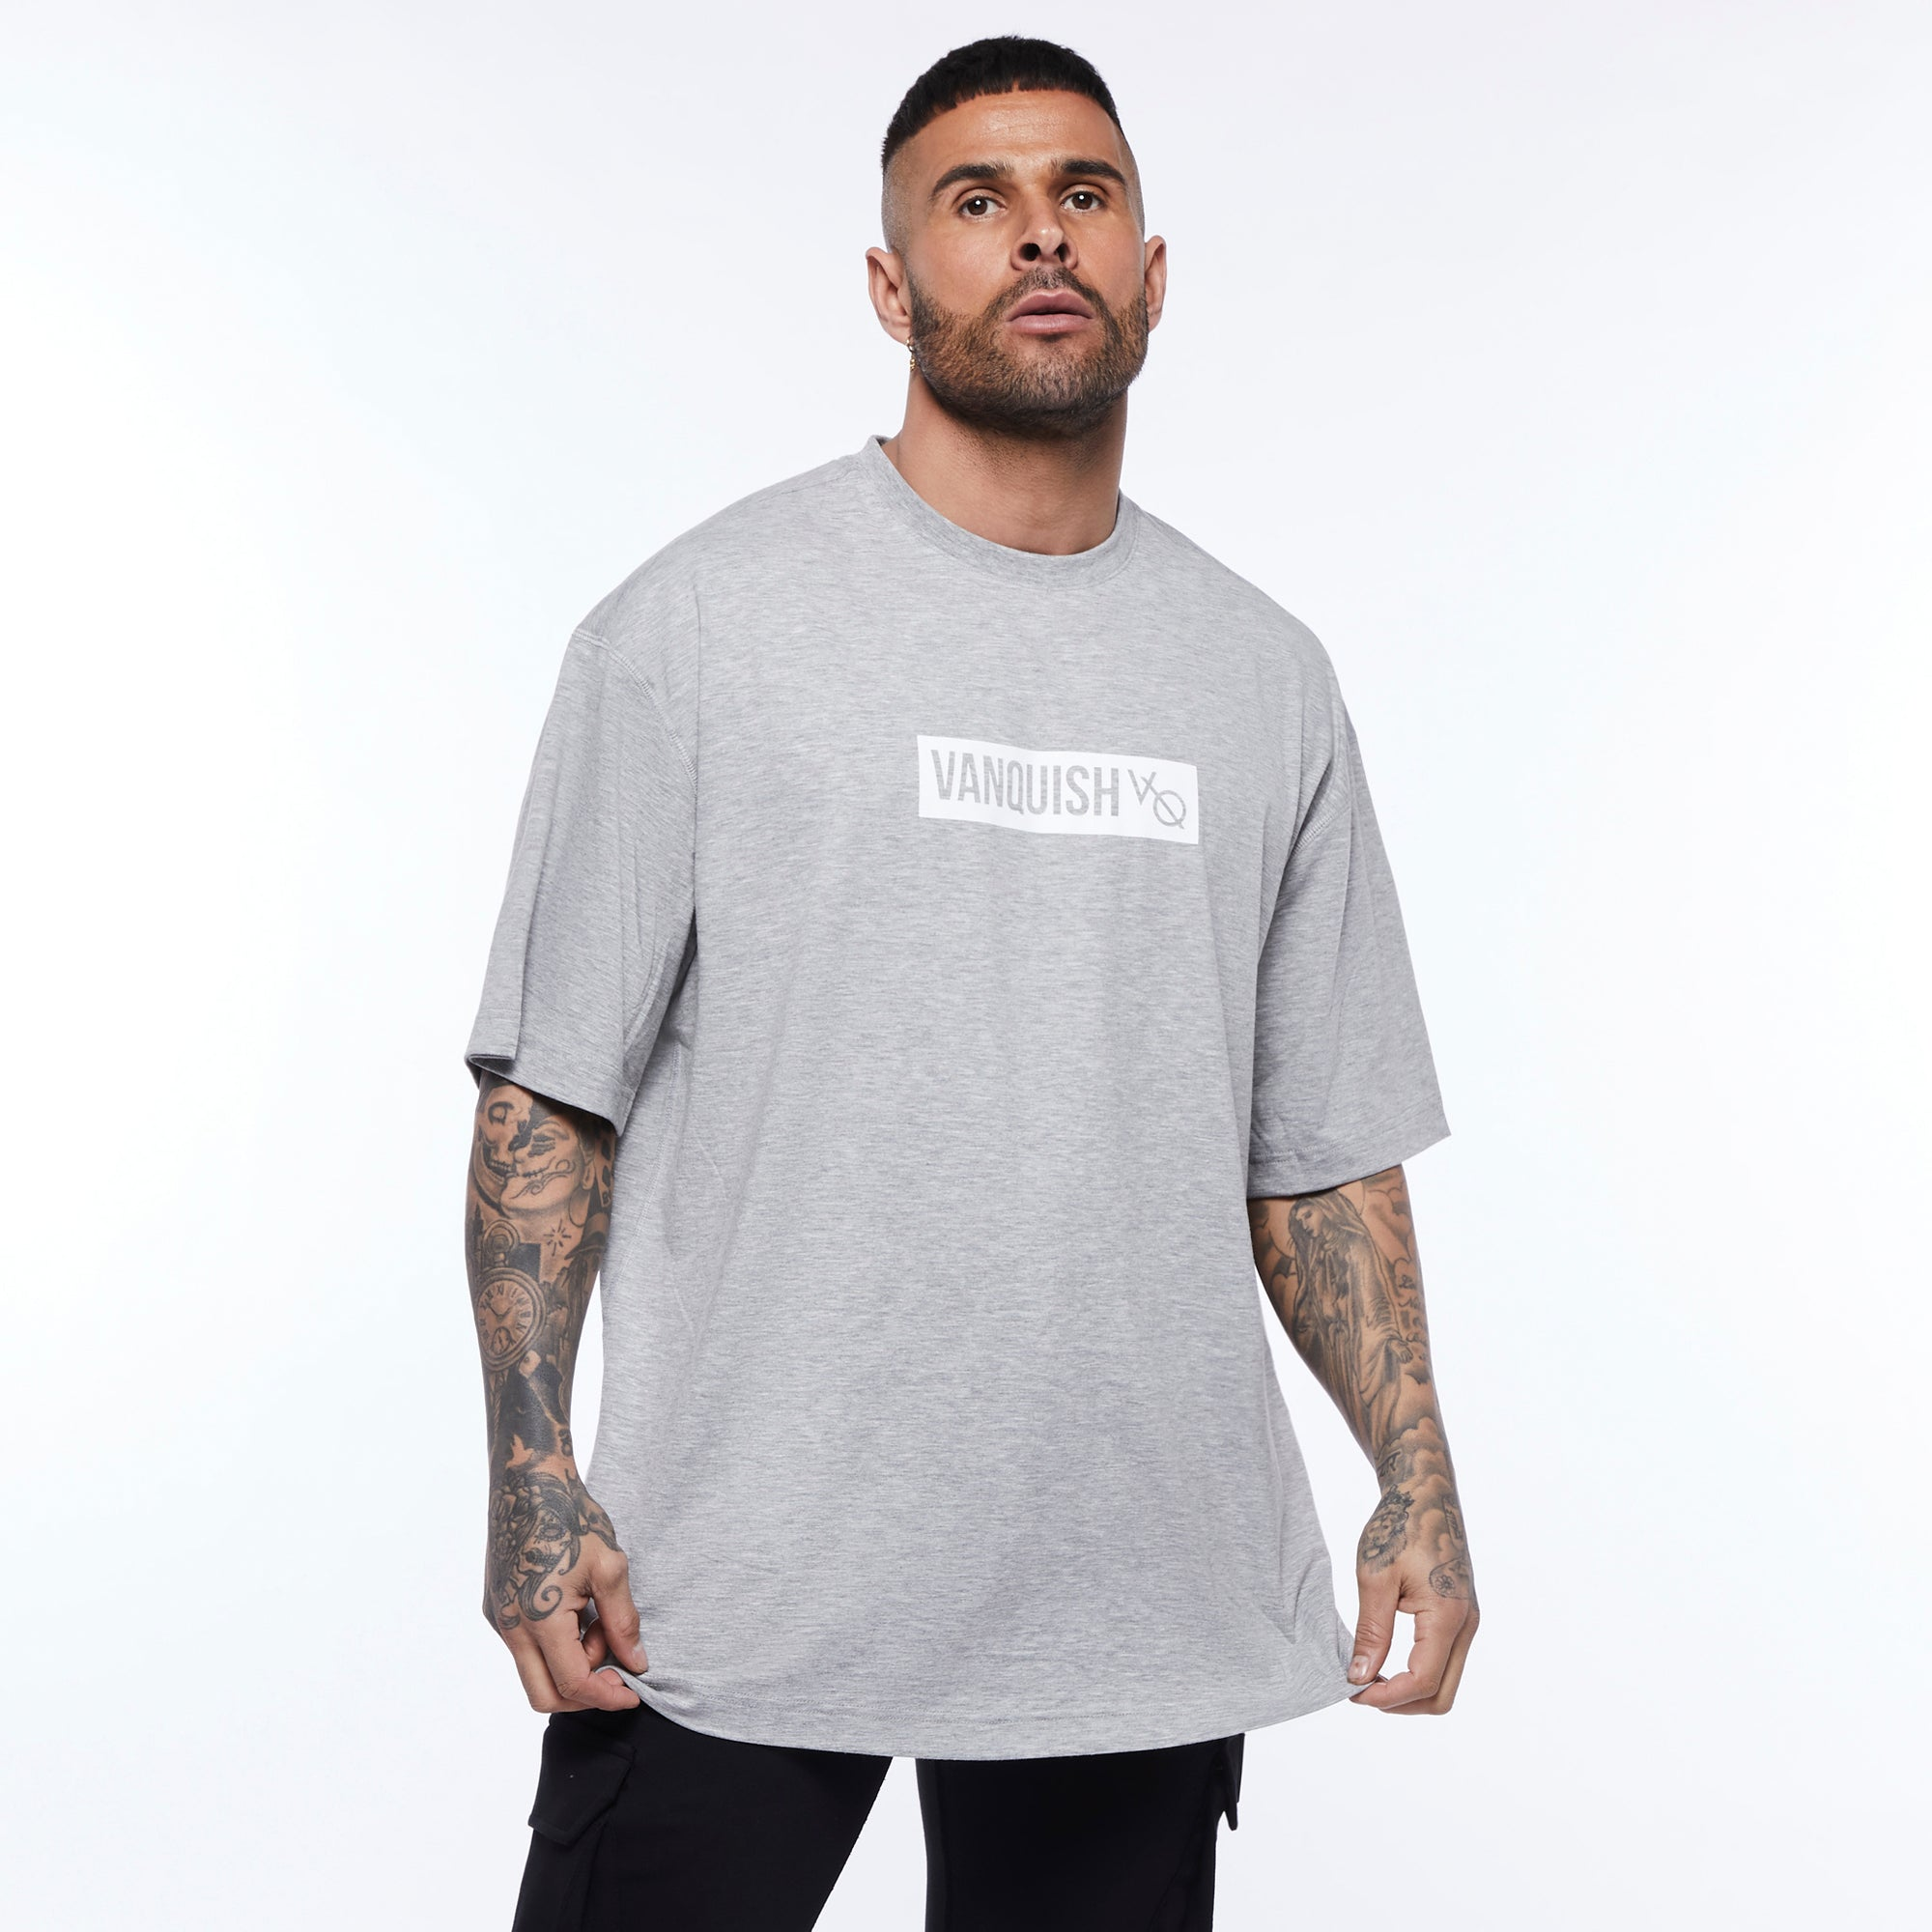 Vanquish Box Logo Ash Grey Oversized T Shirt